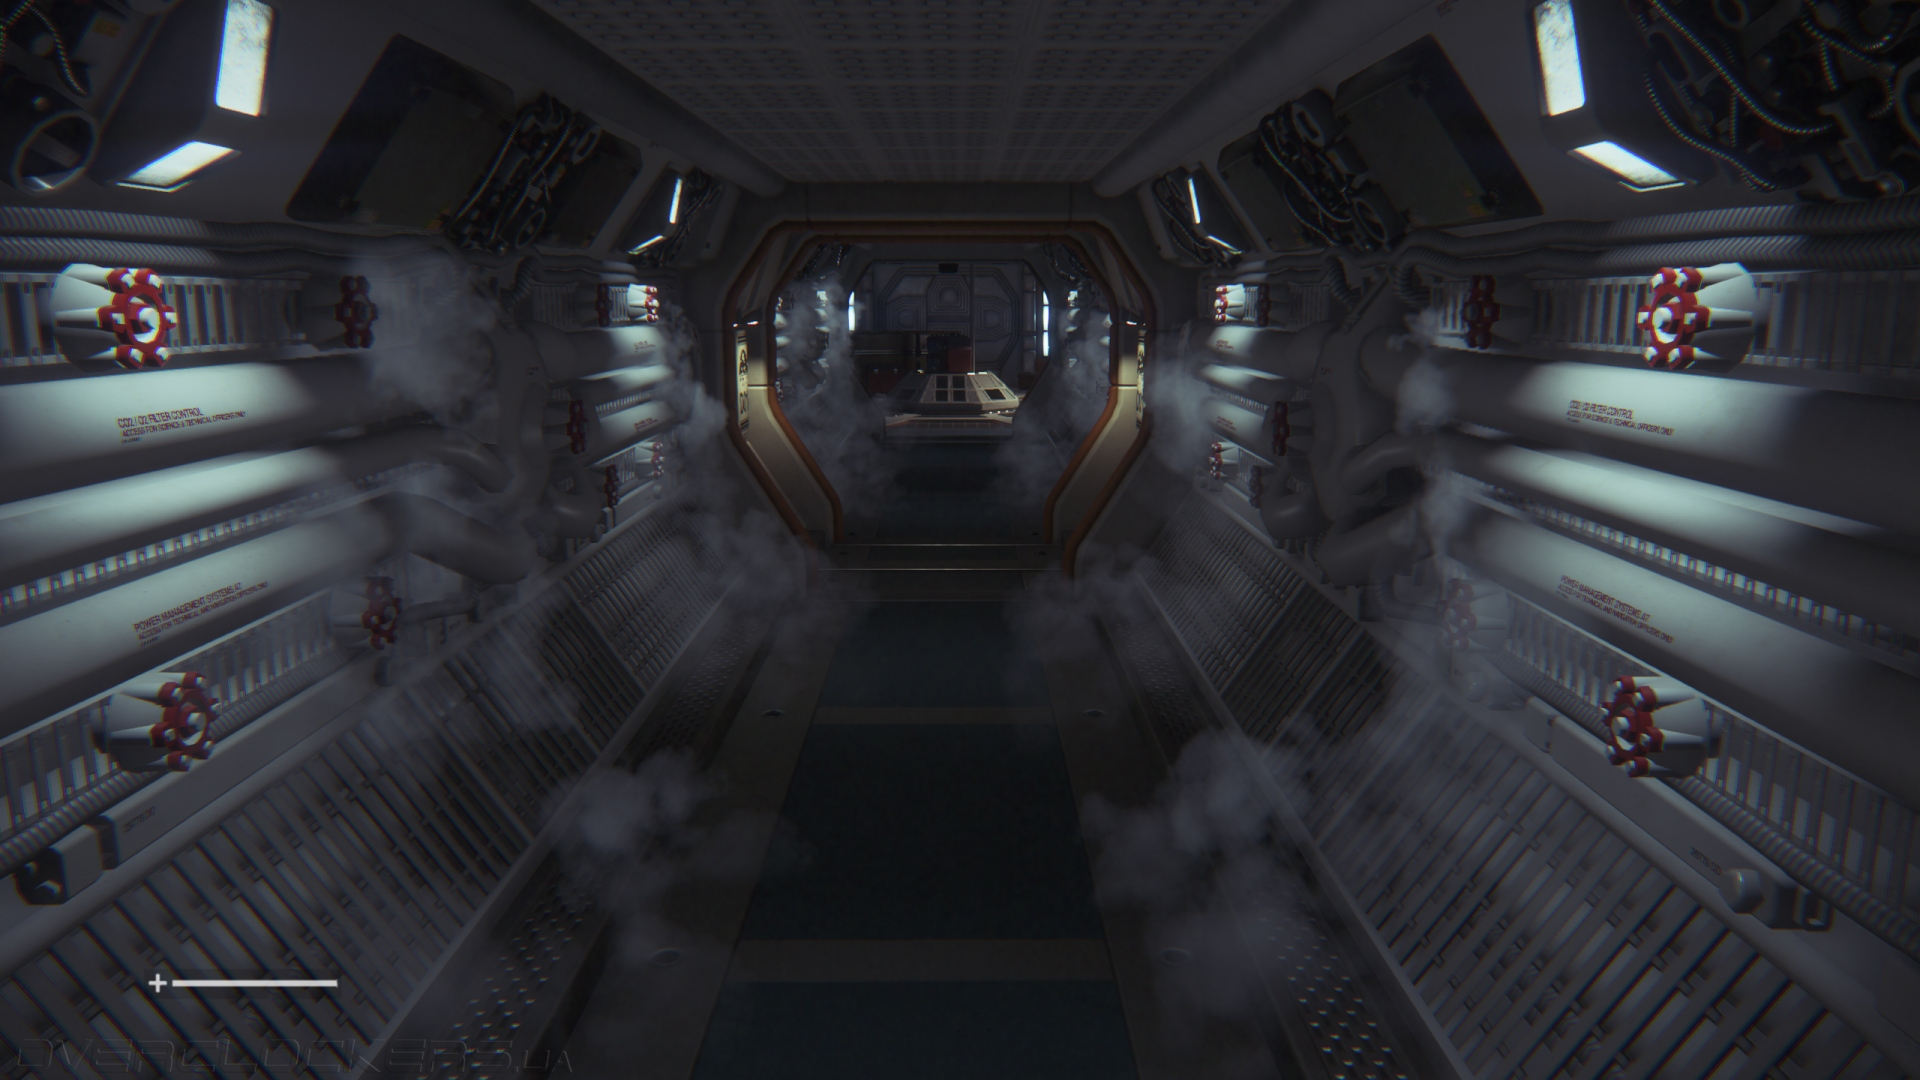 http://www.overclockers.ua/games/alien-isolation/05-big-alien-isolation.jpg